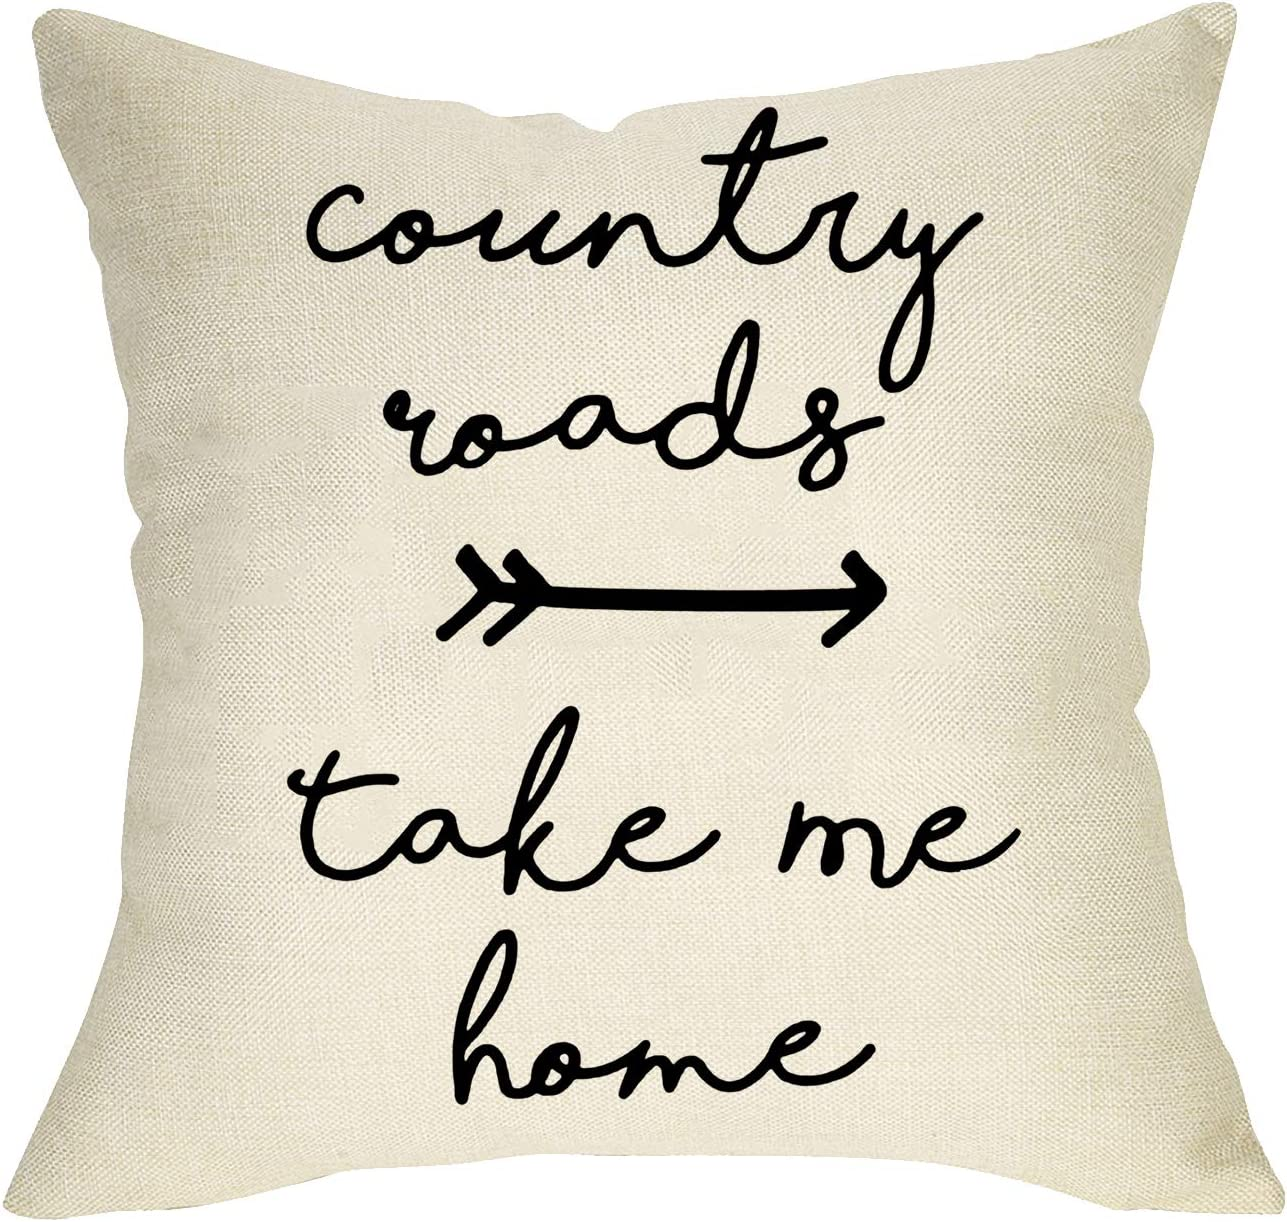 Softxpp Country Roads Take Me Home Quotes Throw Pillow Cover, Christmas Farmhouse Decorative Cushion Case Xmas Home Decoration Winter Square Pillowcase Decor for Sofa Couch 18 x 18 Inch Cotton Linen